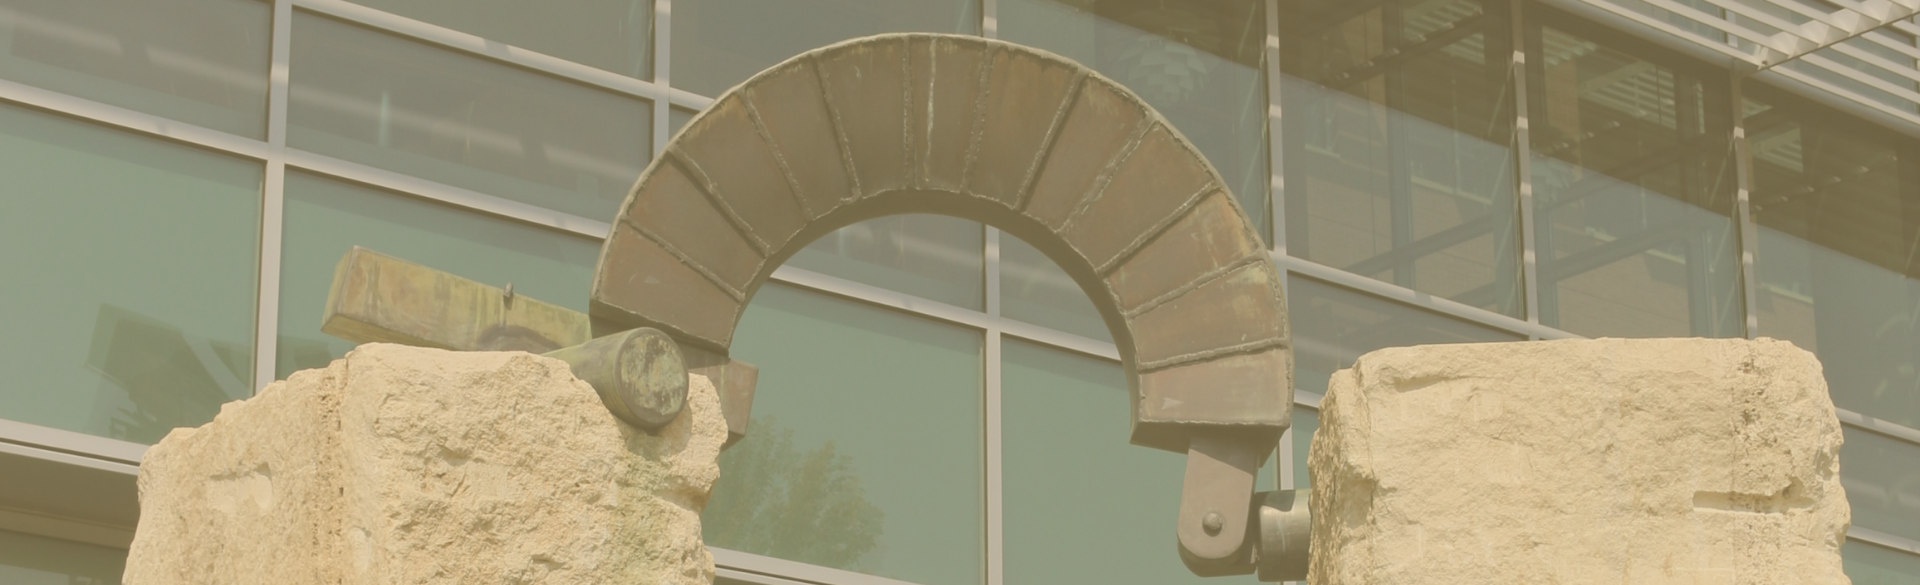 stone and metal sculpture